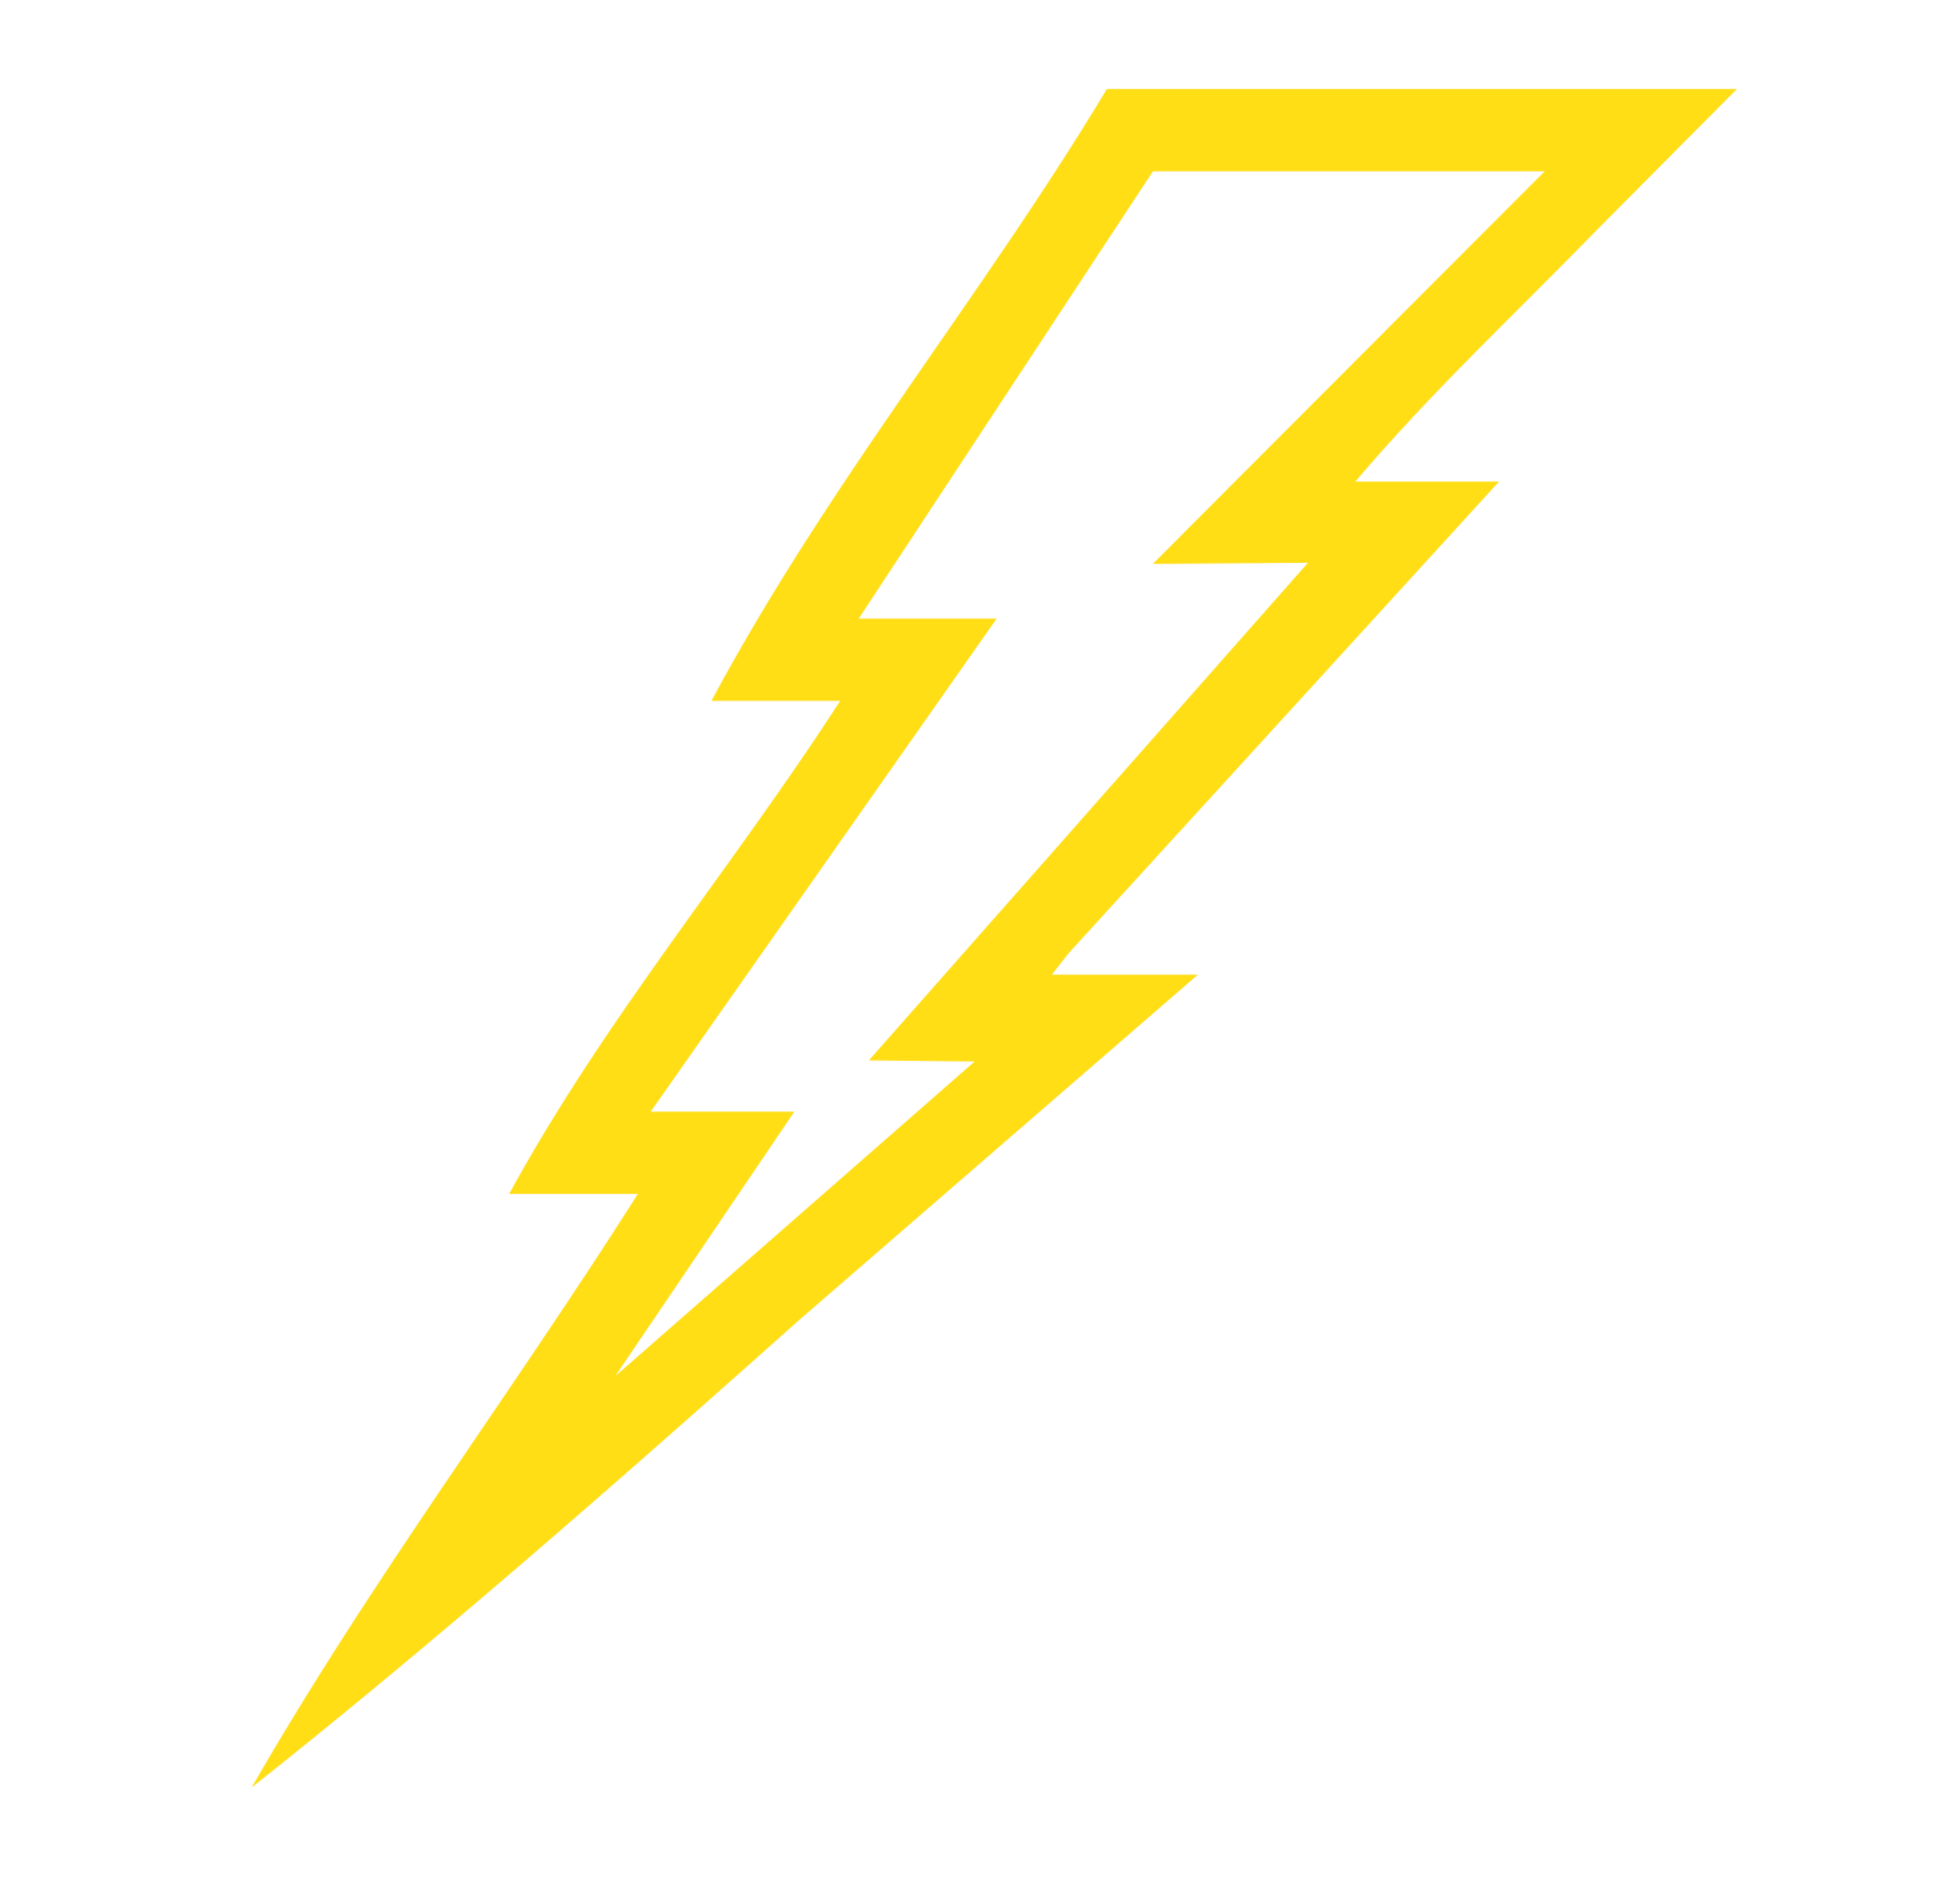 lightning bolt clipart horizontal